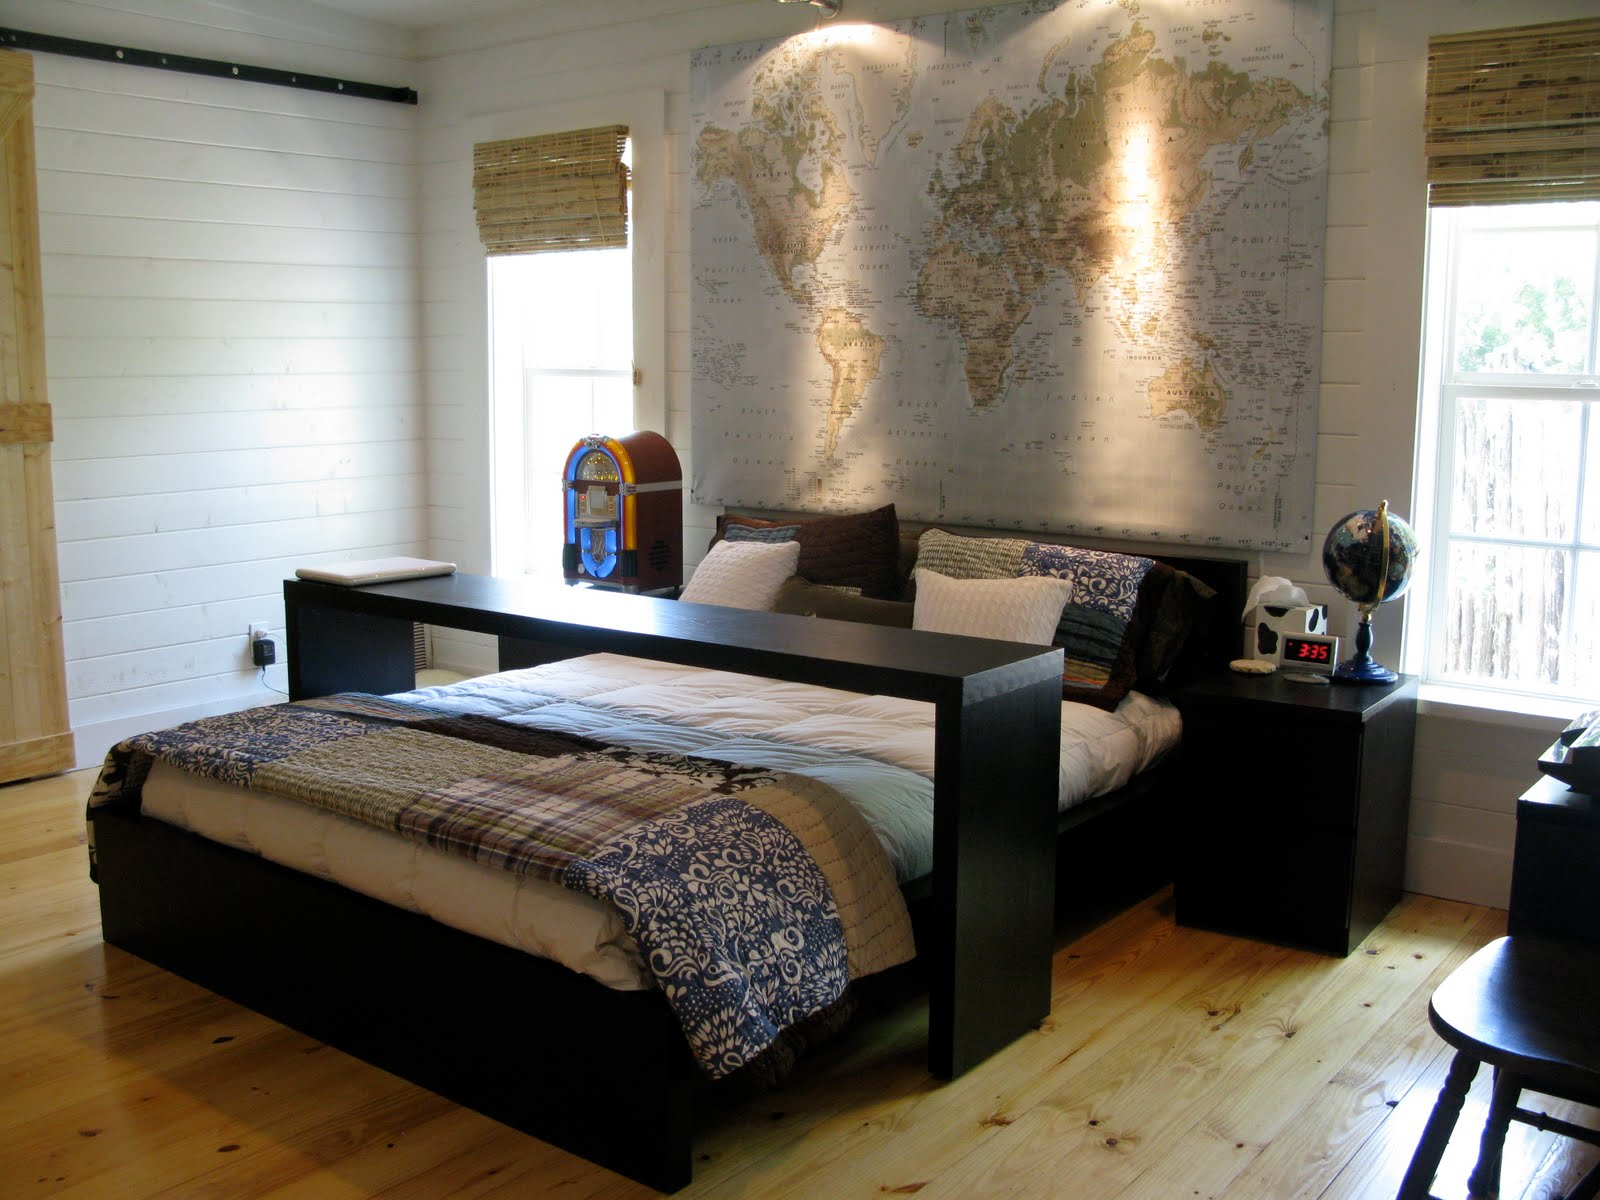 divine-modern-black-bedding-furniture-set-from-ikea-for-your-small-bedroom-design-ideas-with-map-and-globe-ornament